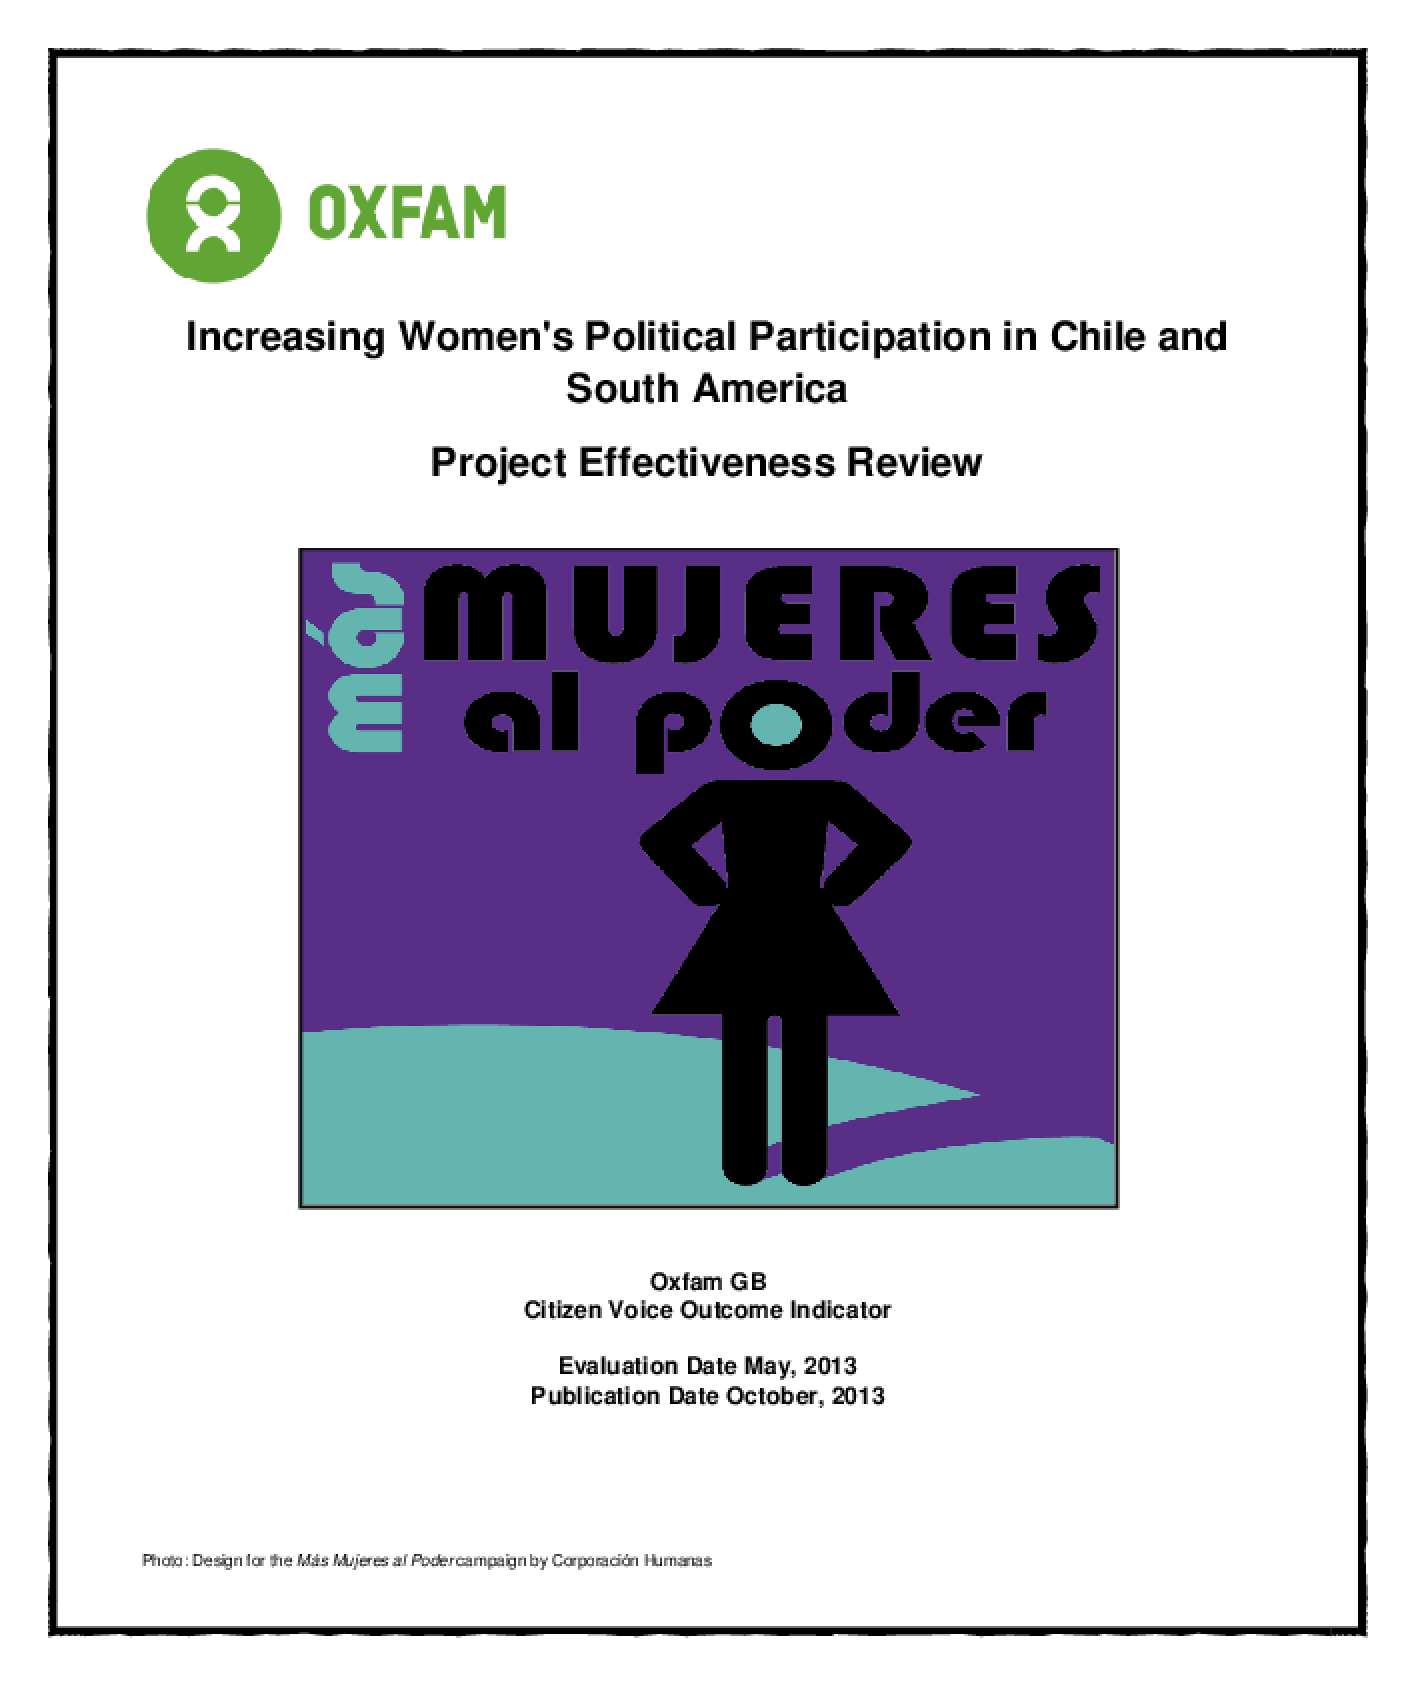 Effectiveness Review: Increasing Women's Political Participation in Chile and South America